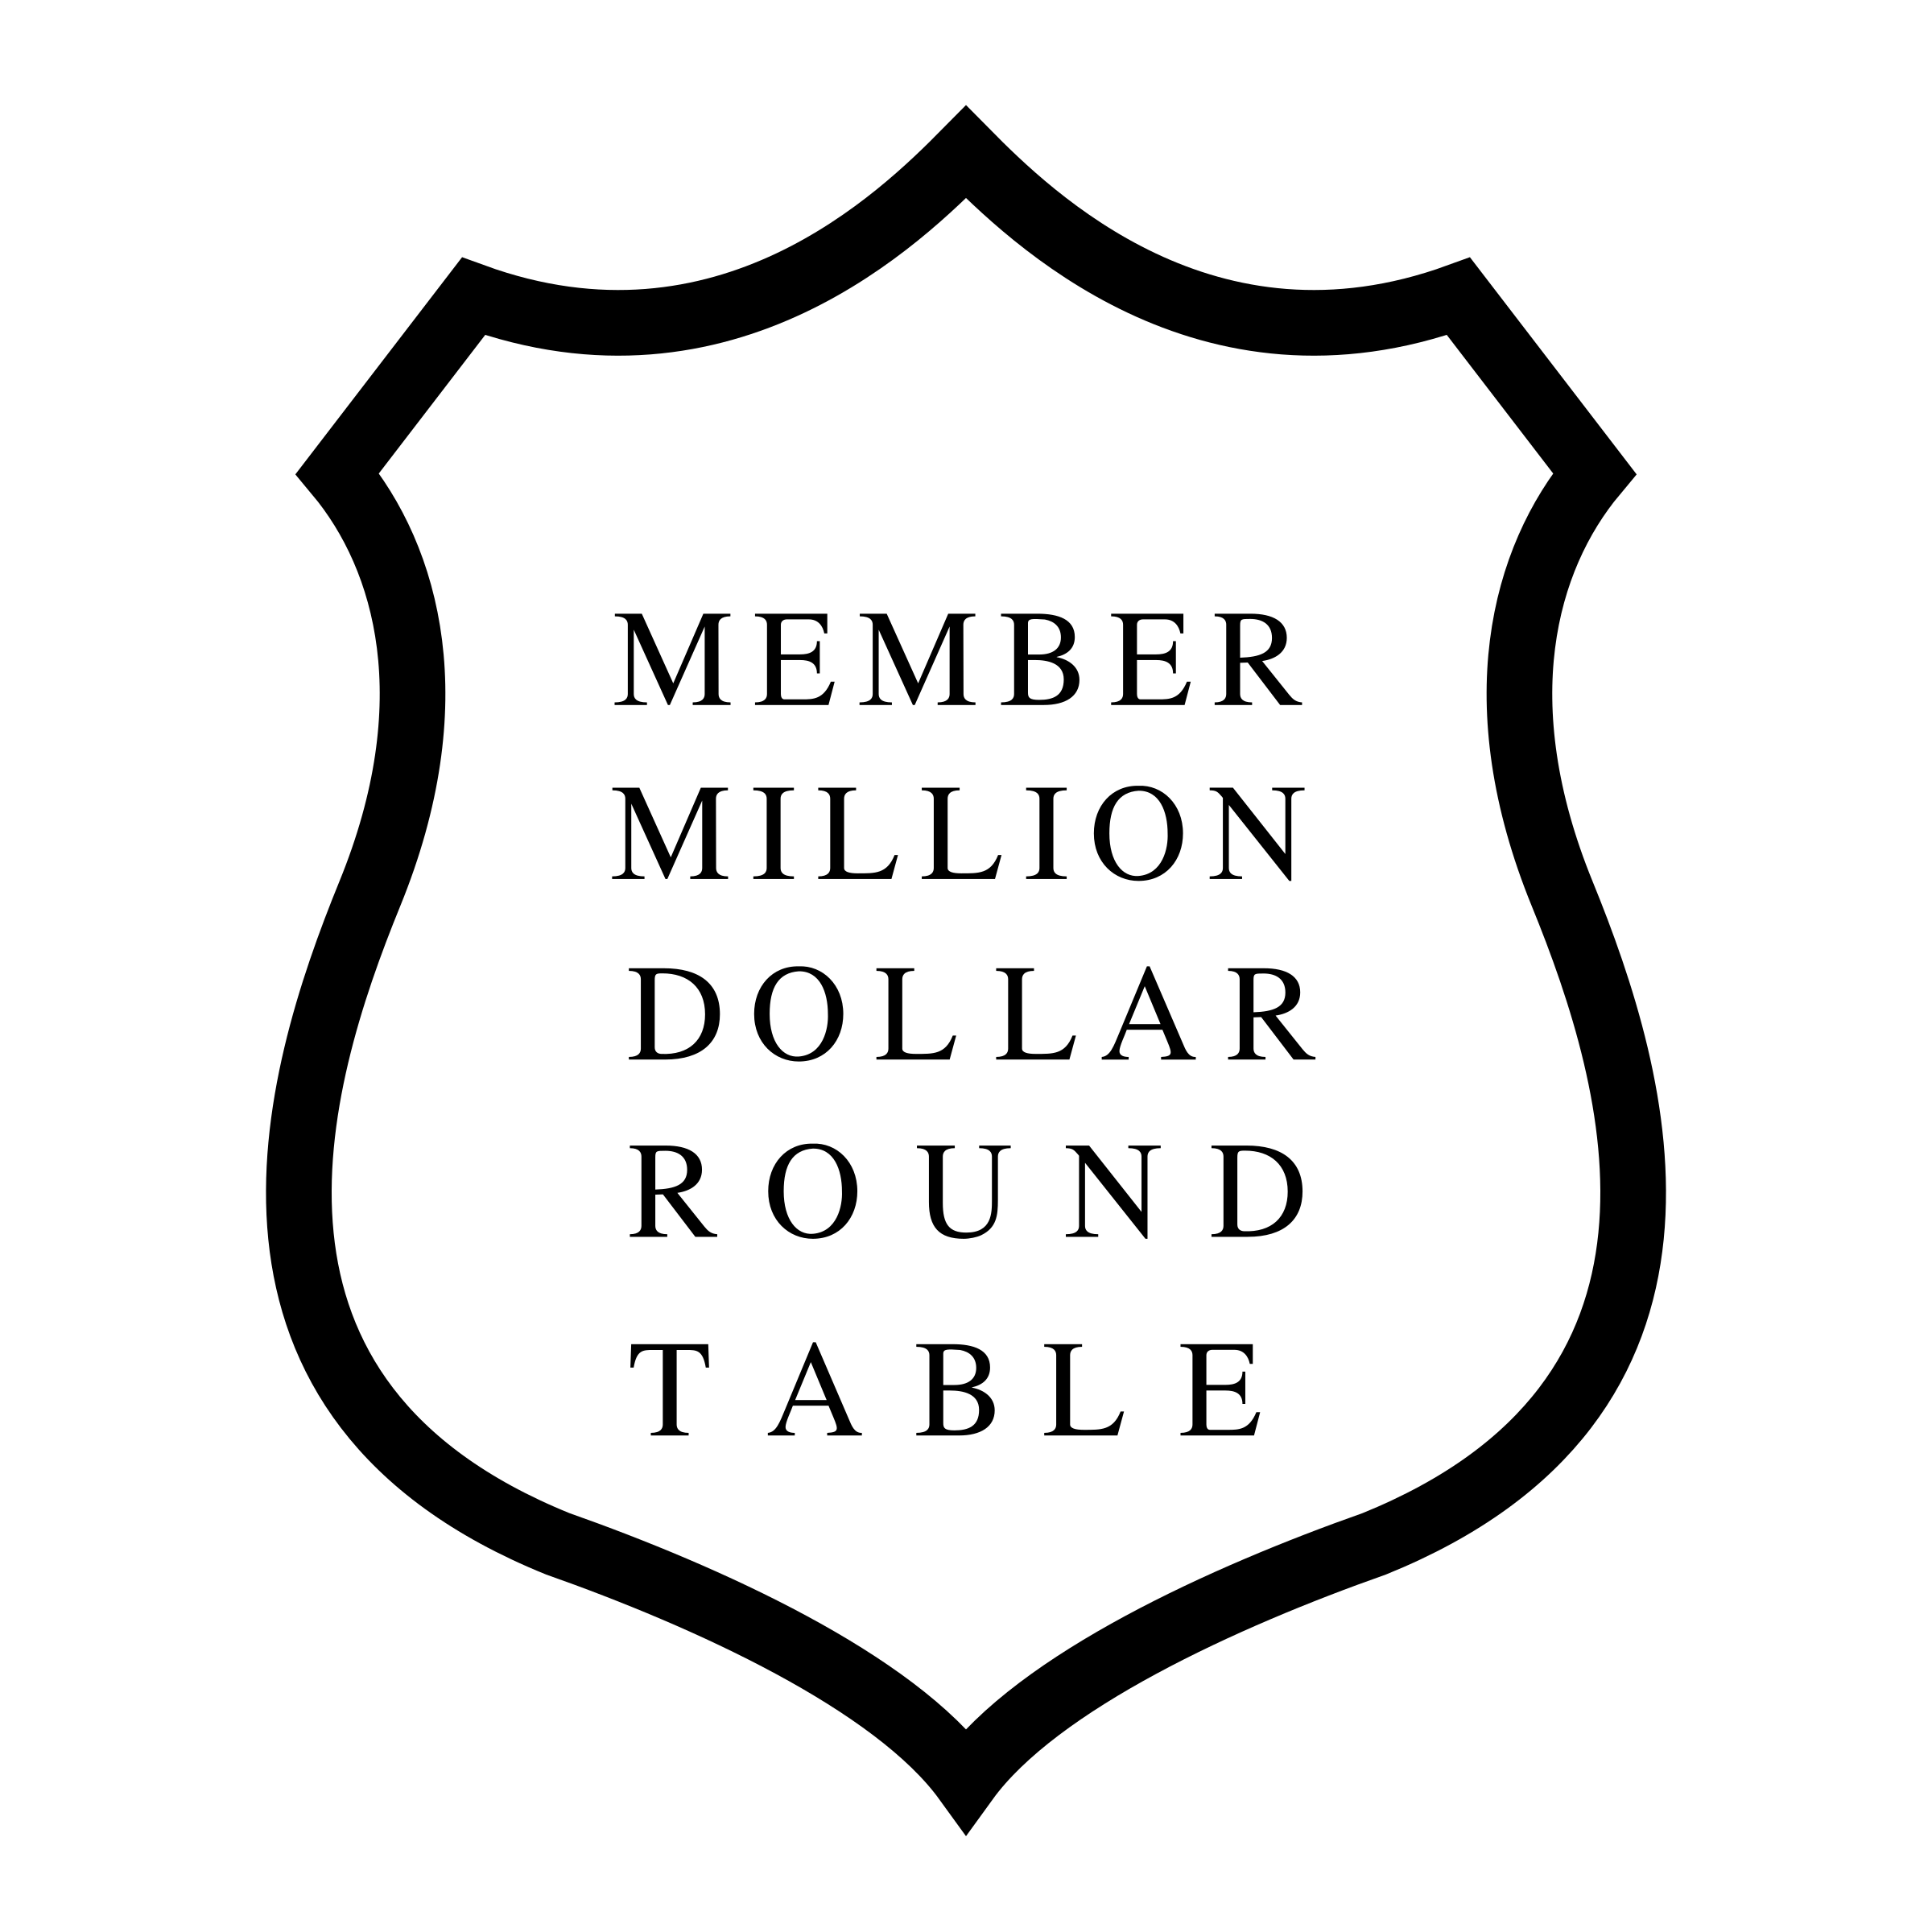 Million Dollar Round Table Logo Png, What Is The Million Dollar Round Table